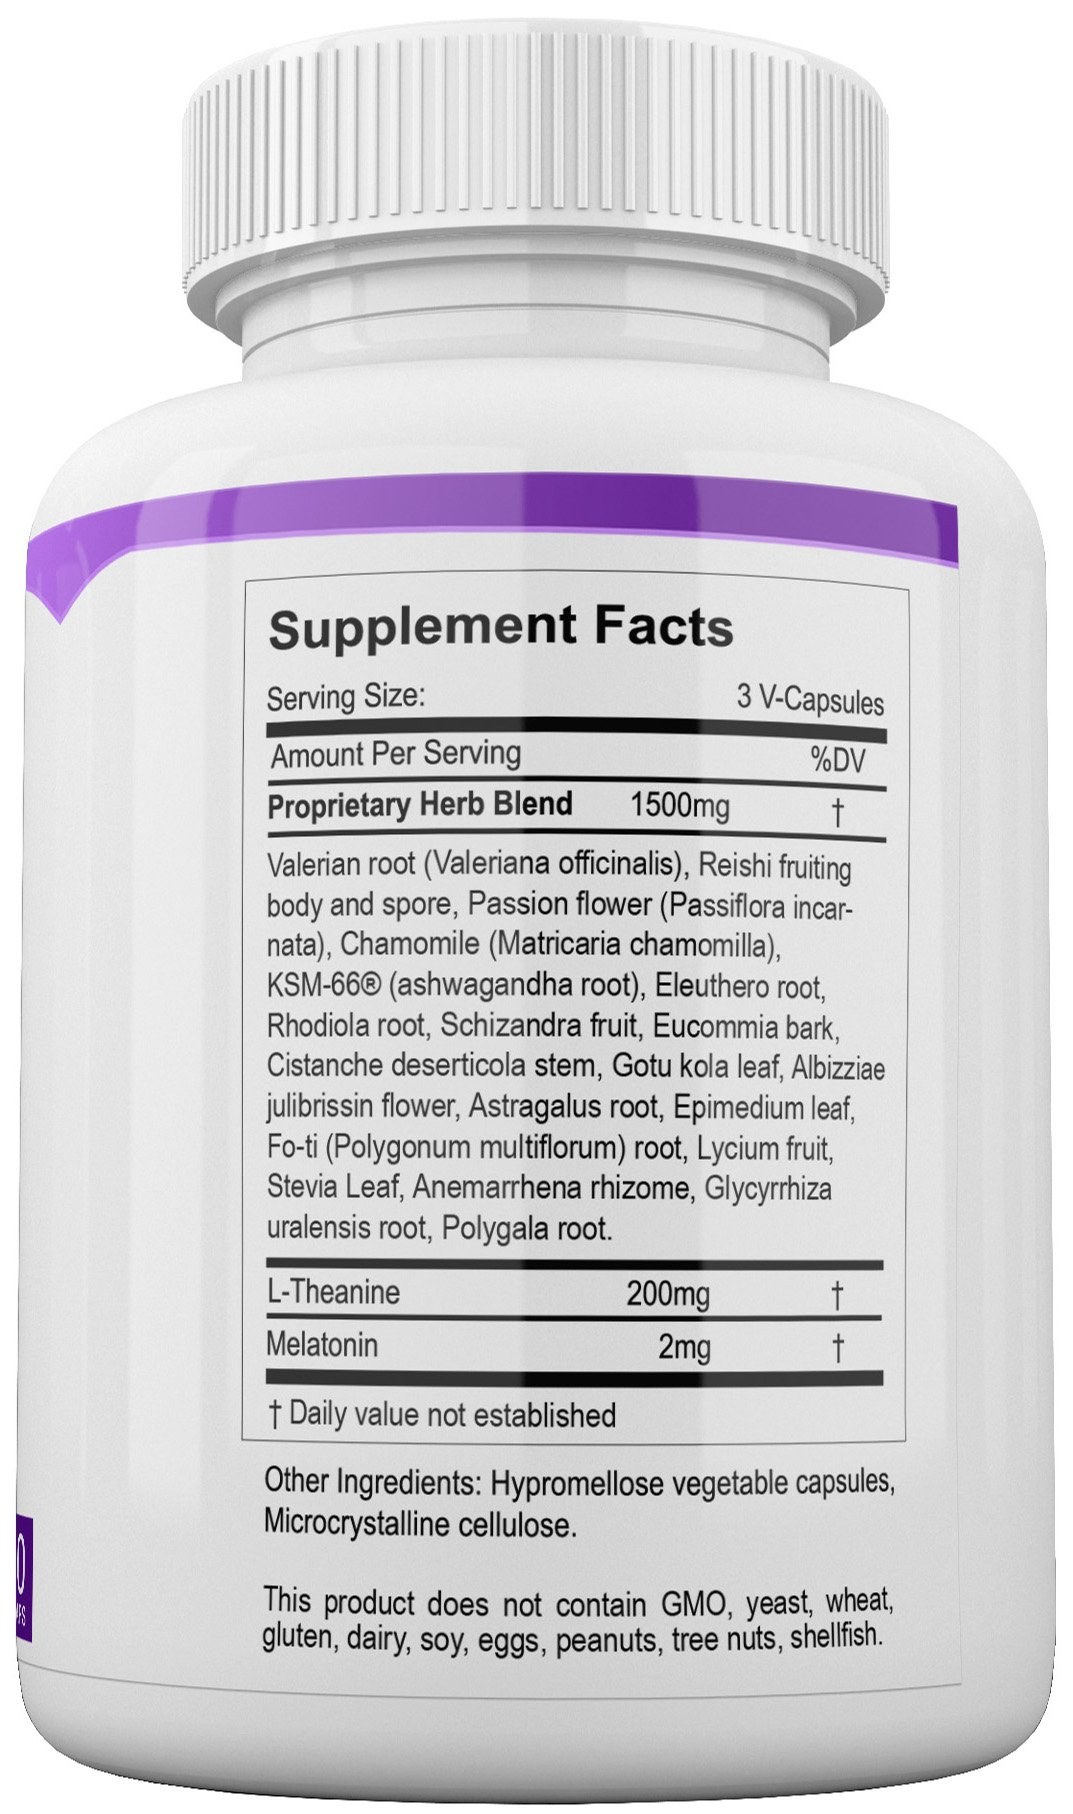 Sleep and Recover - Natural Sleep Aid - Non Habit Forming - 60 V-Capsules by HerbWorks (Image #3)